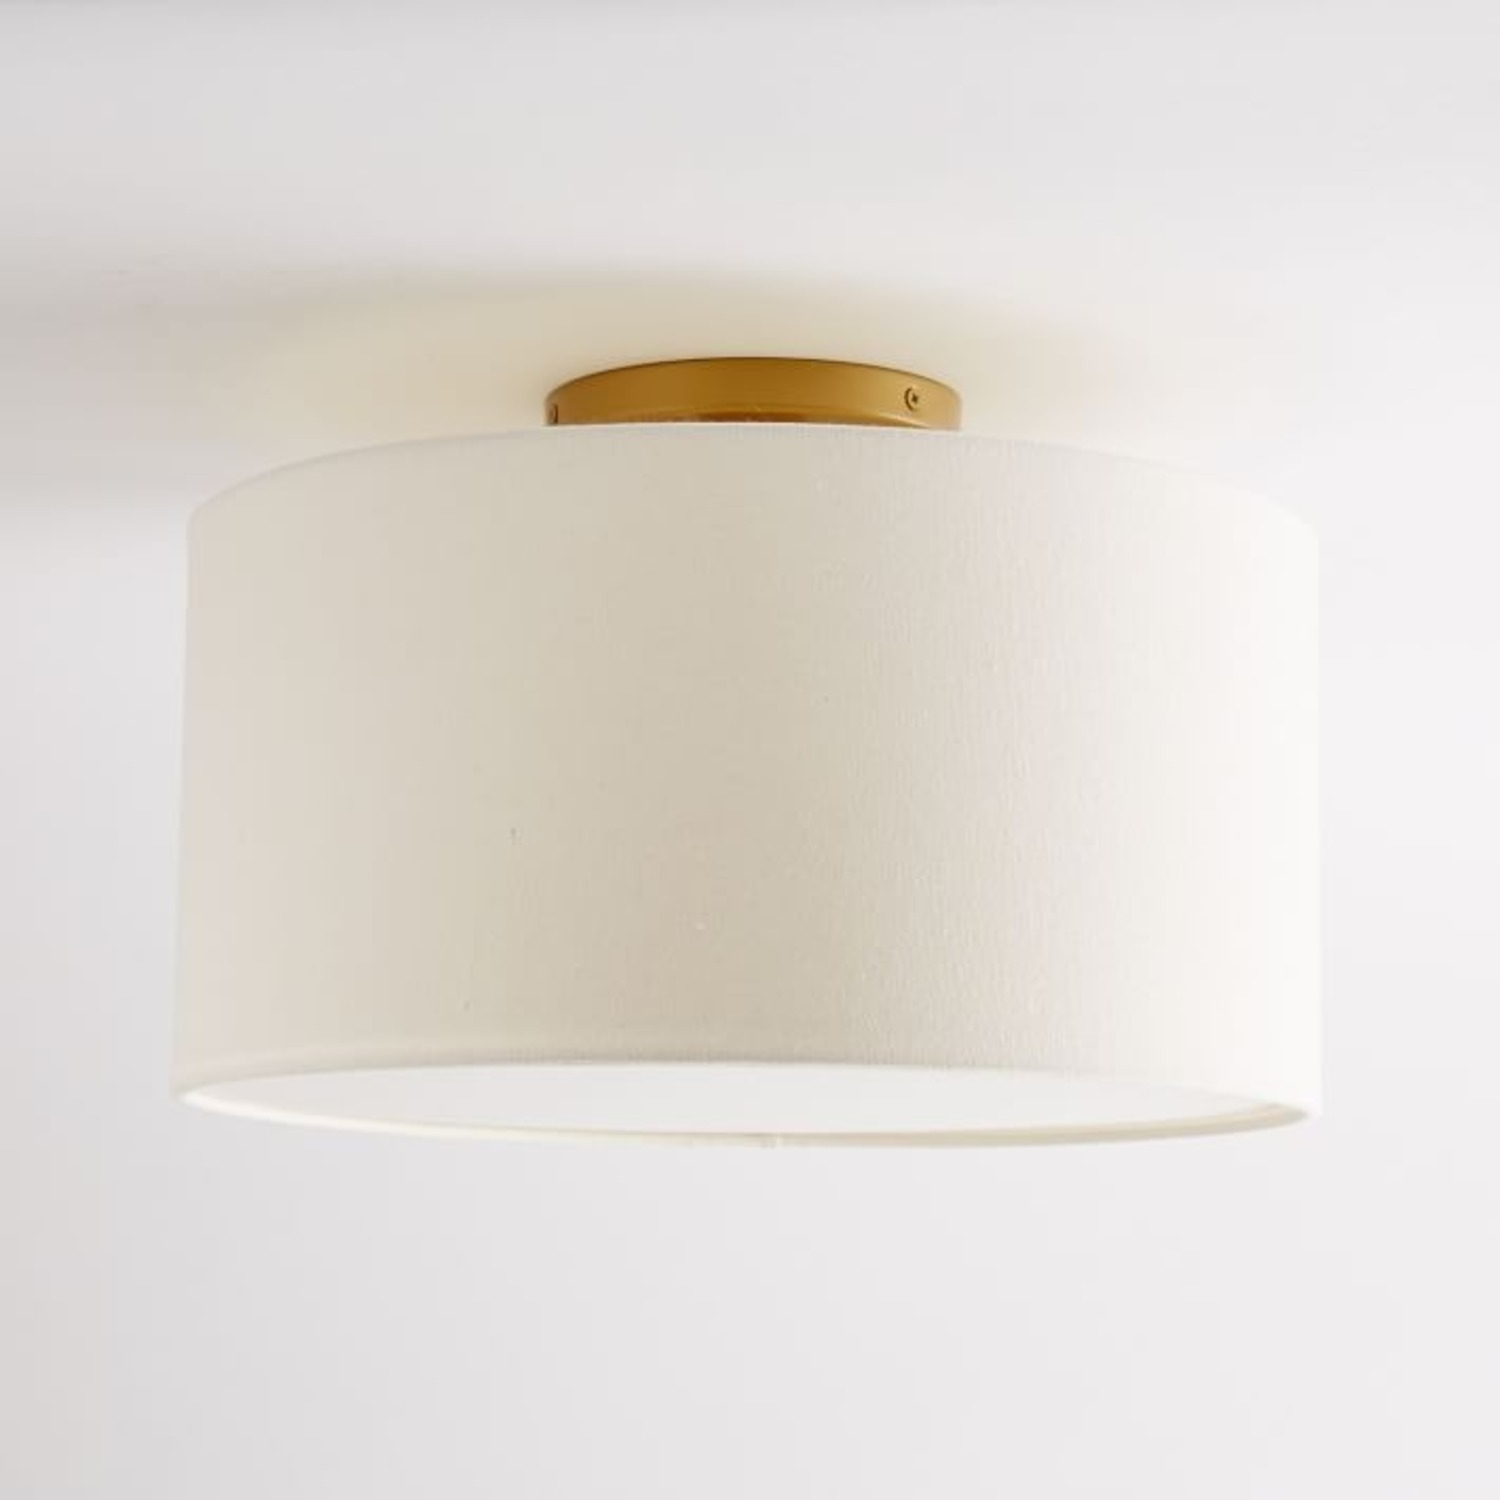 West Elm Fabric Shade Flush Mount - image-1